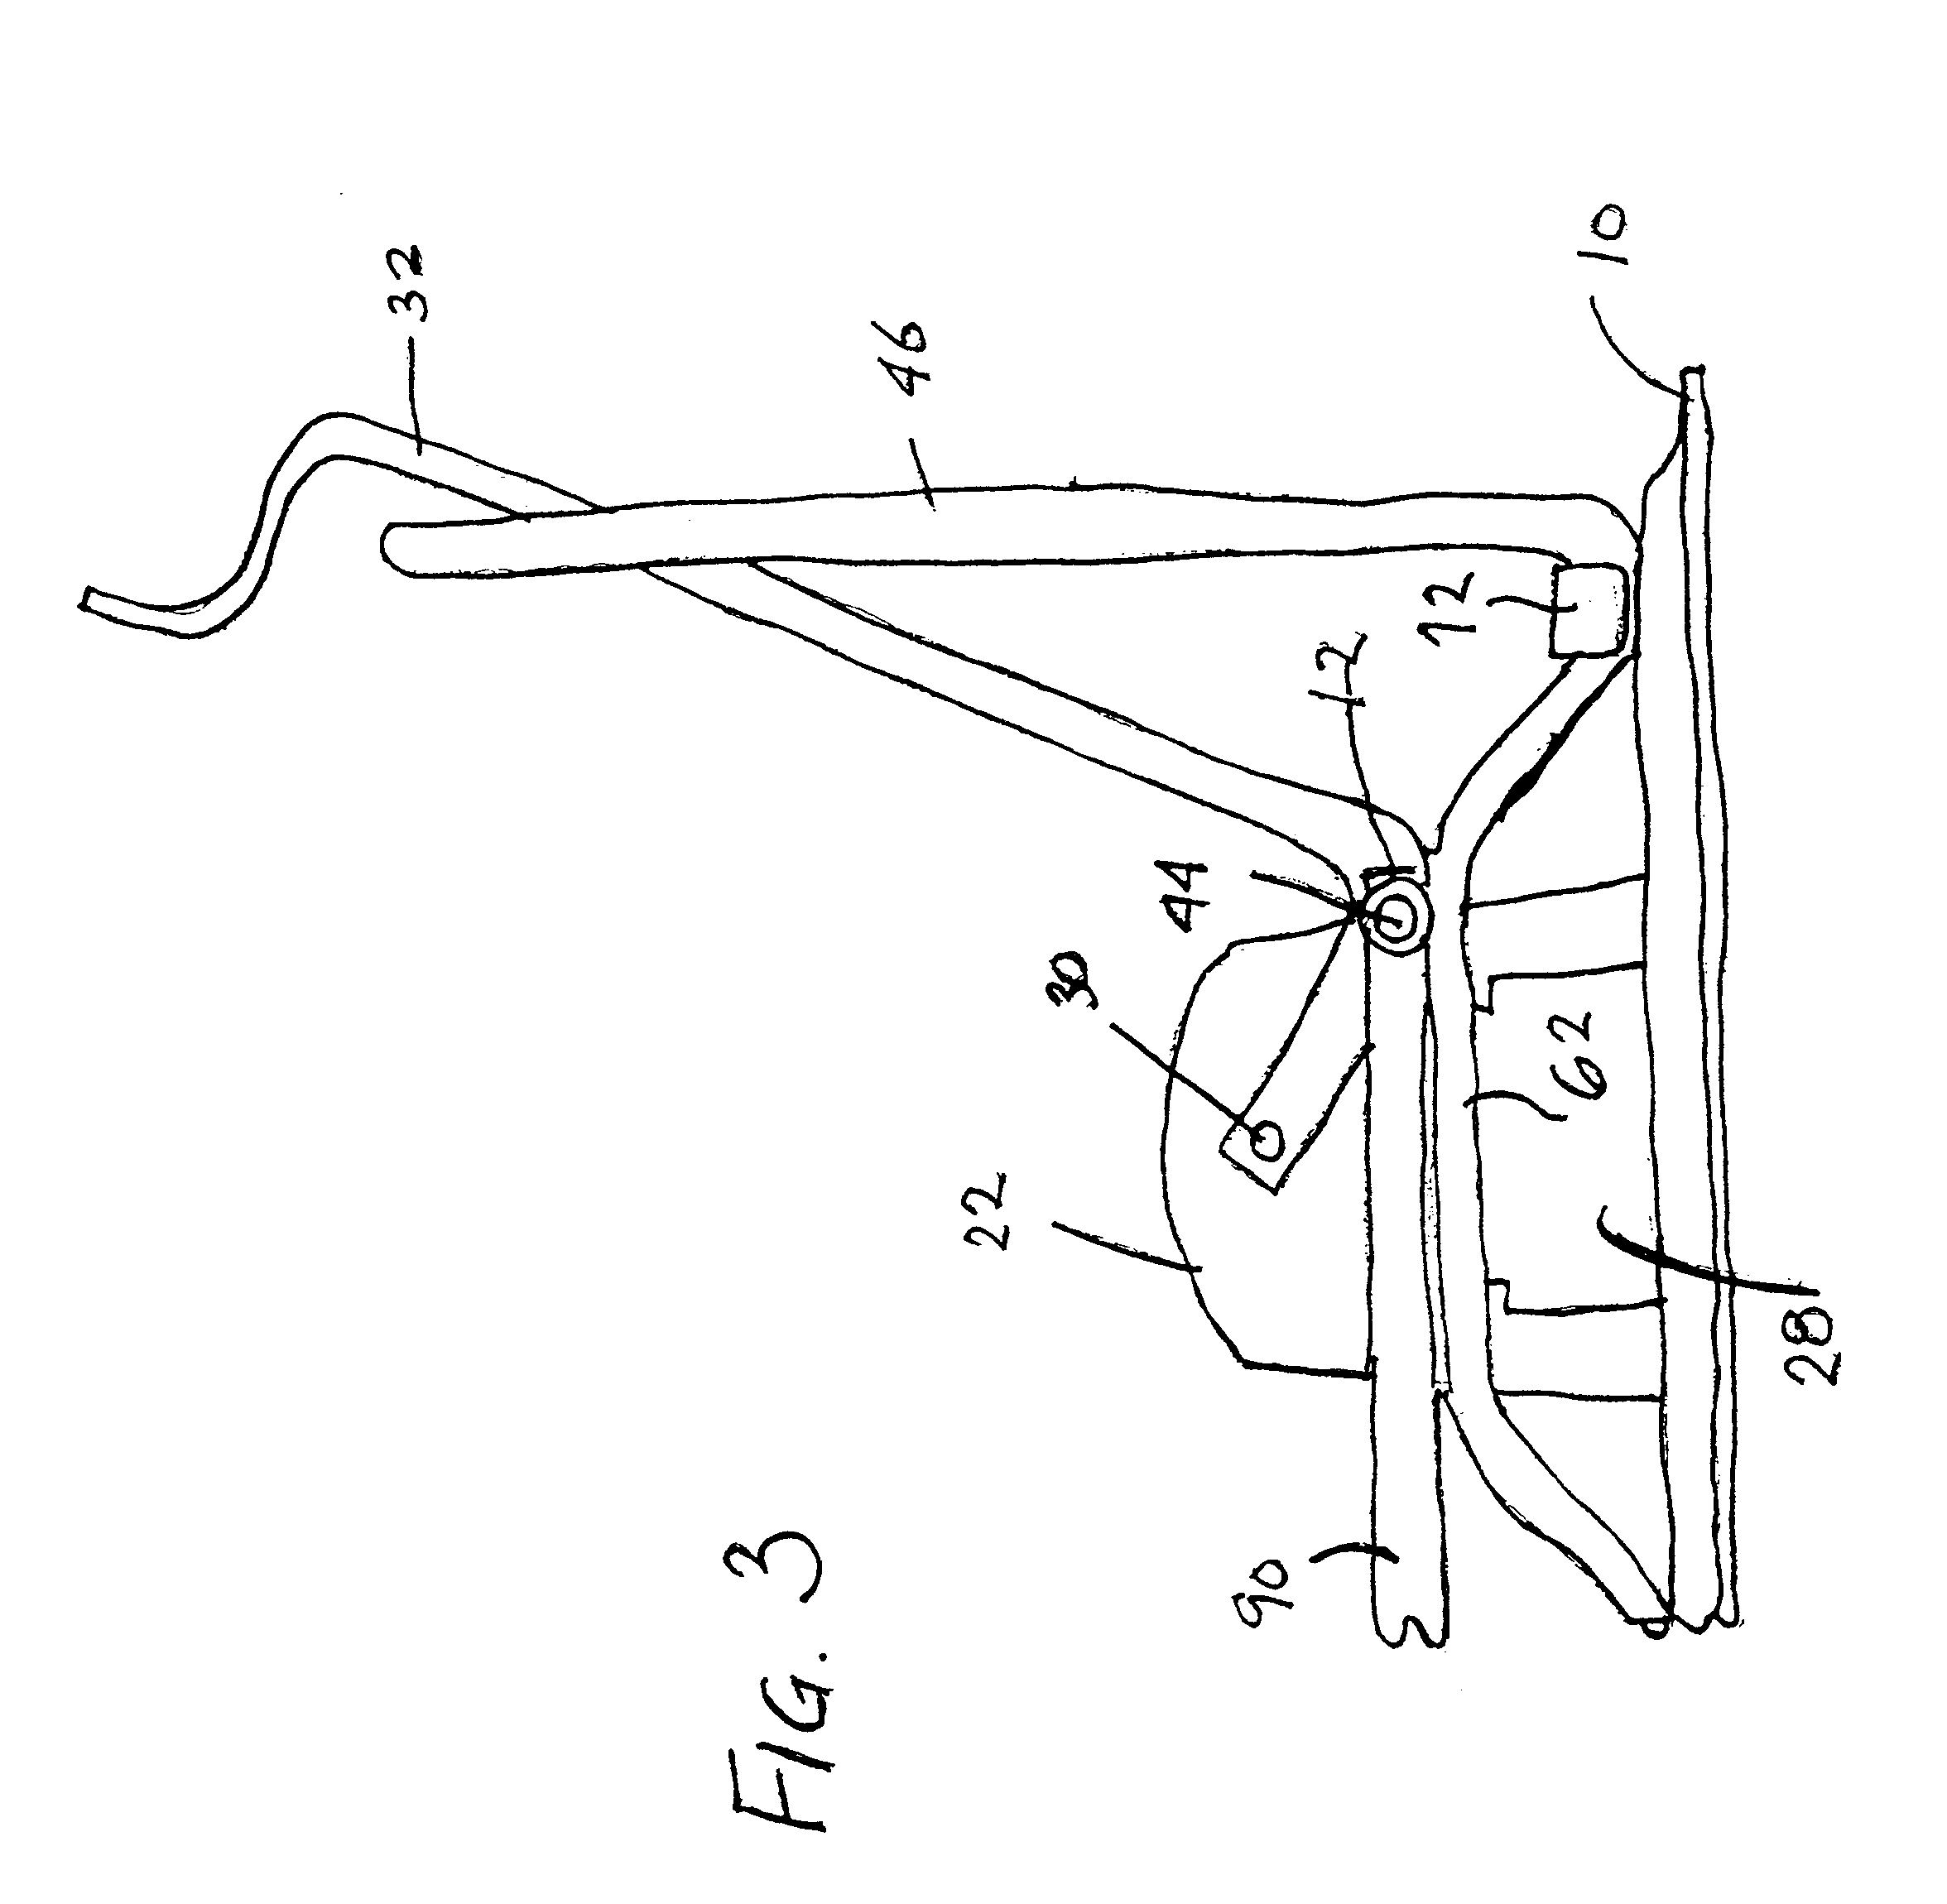 Three-ring Binder With Actuating Crank